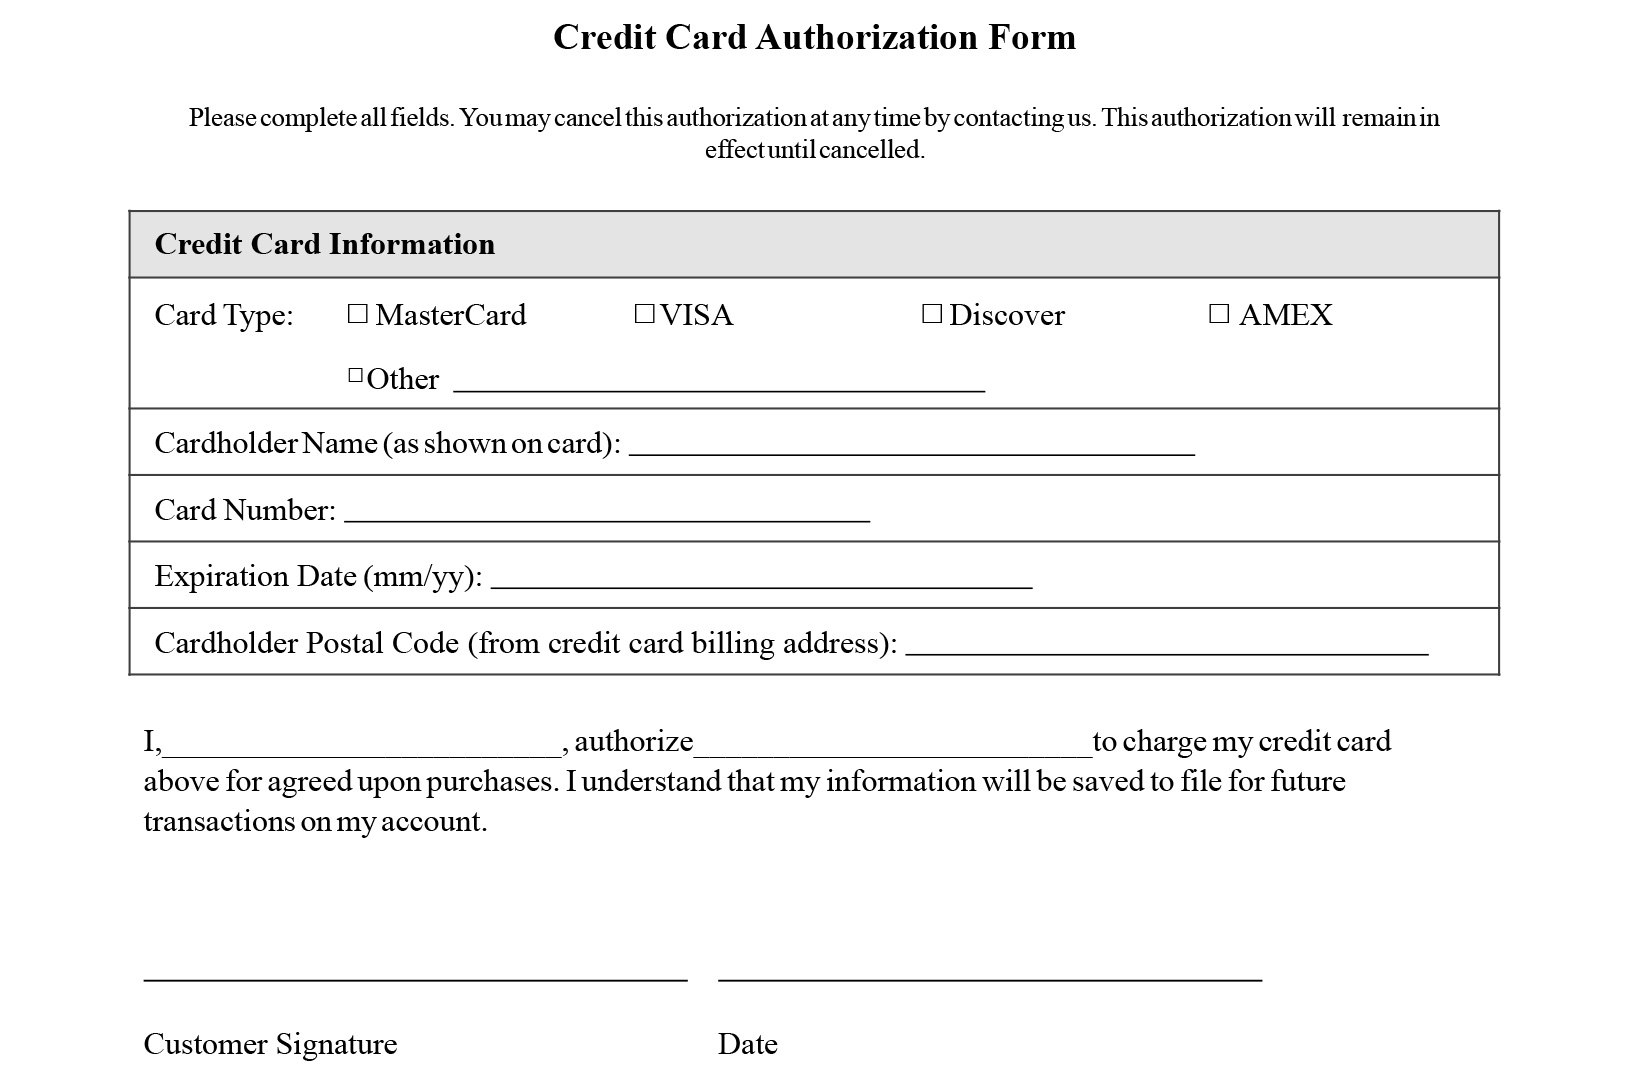 Credit Card Authorization Form Templates Download Inside Authorization To Charge Credit Card Template